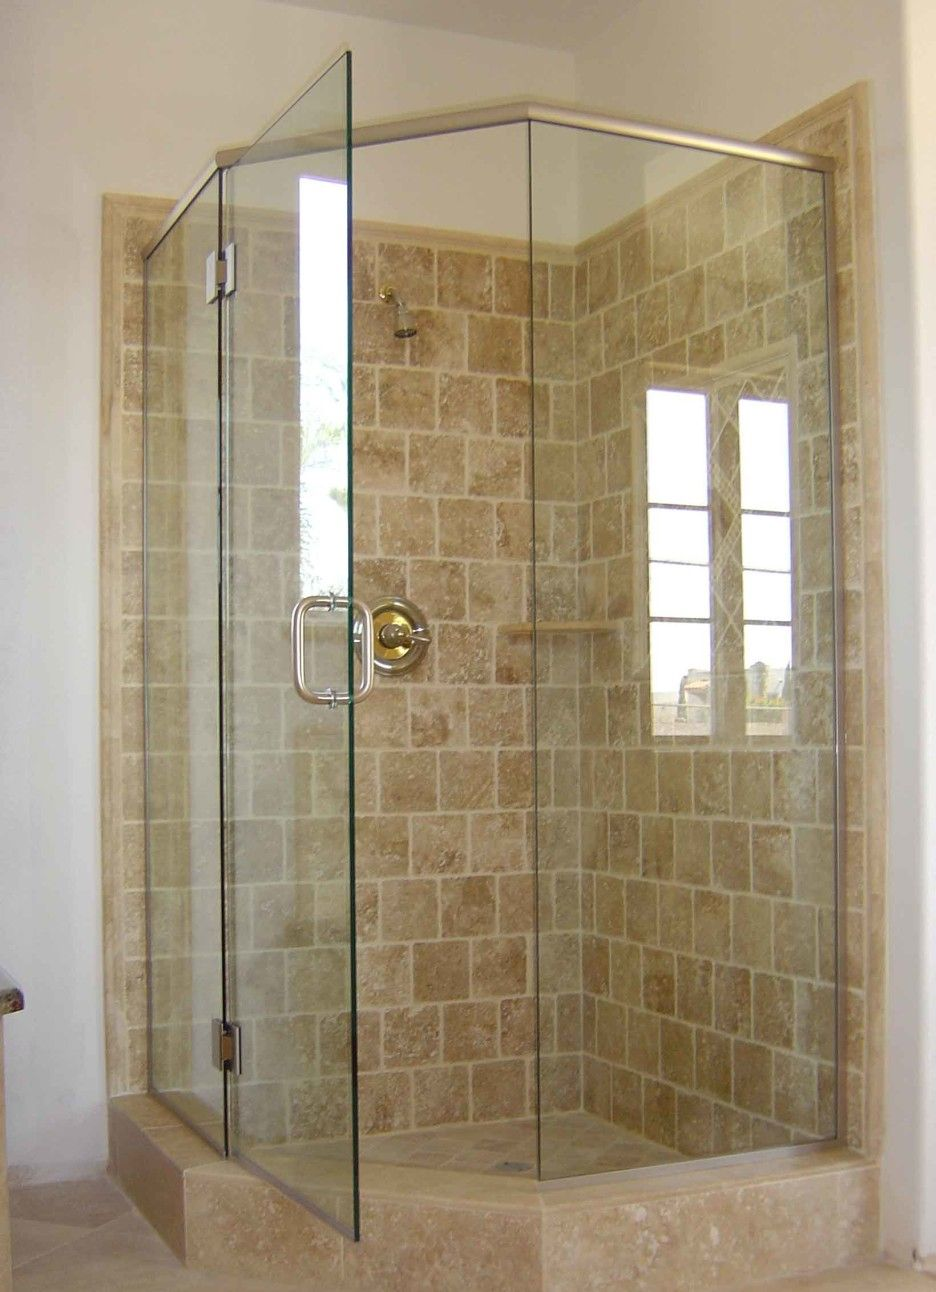 Bathroom Curved Shape Glass Shower Stall With Metal Door Handle